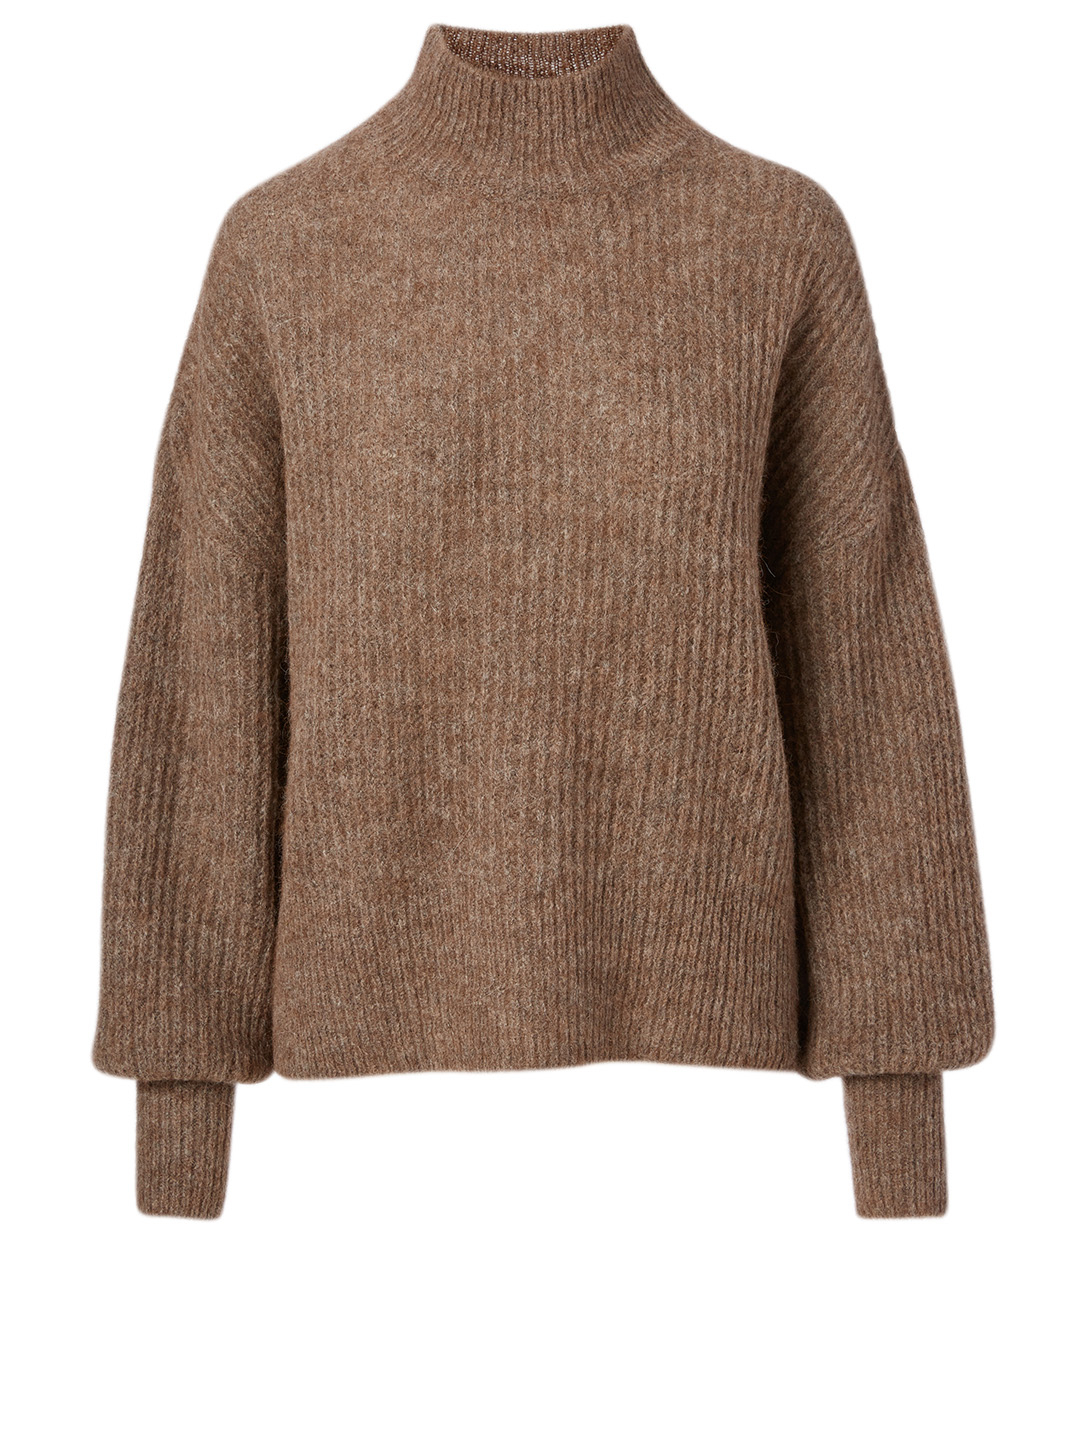 WON HUNDRED Blakely Alpaca And Wool Turtleneck Sweater Women's Brown